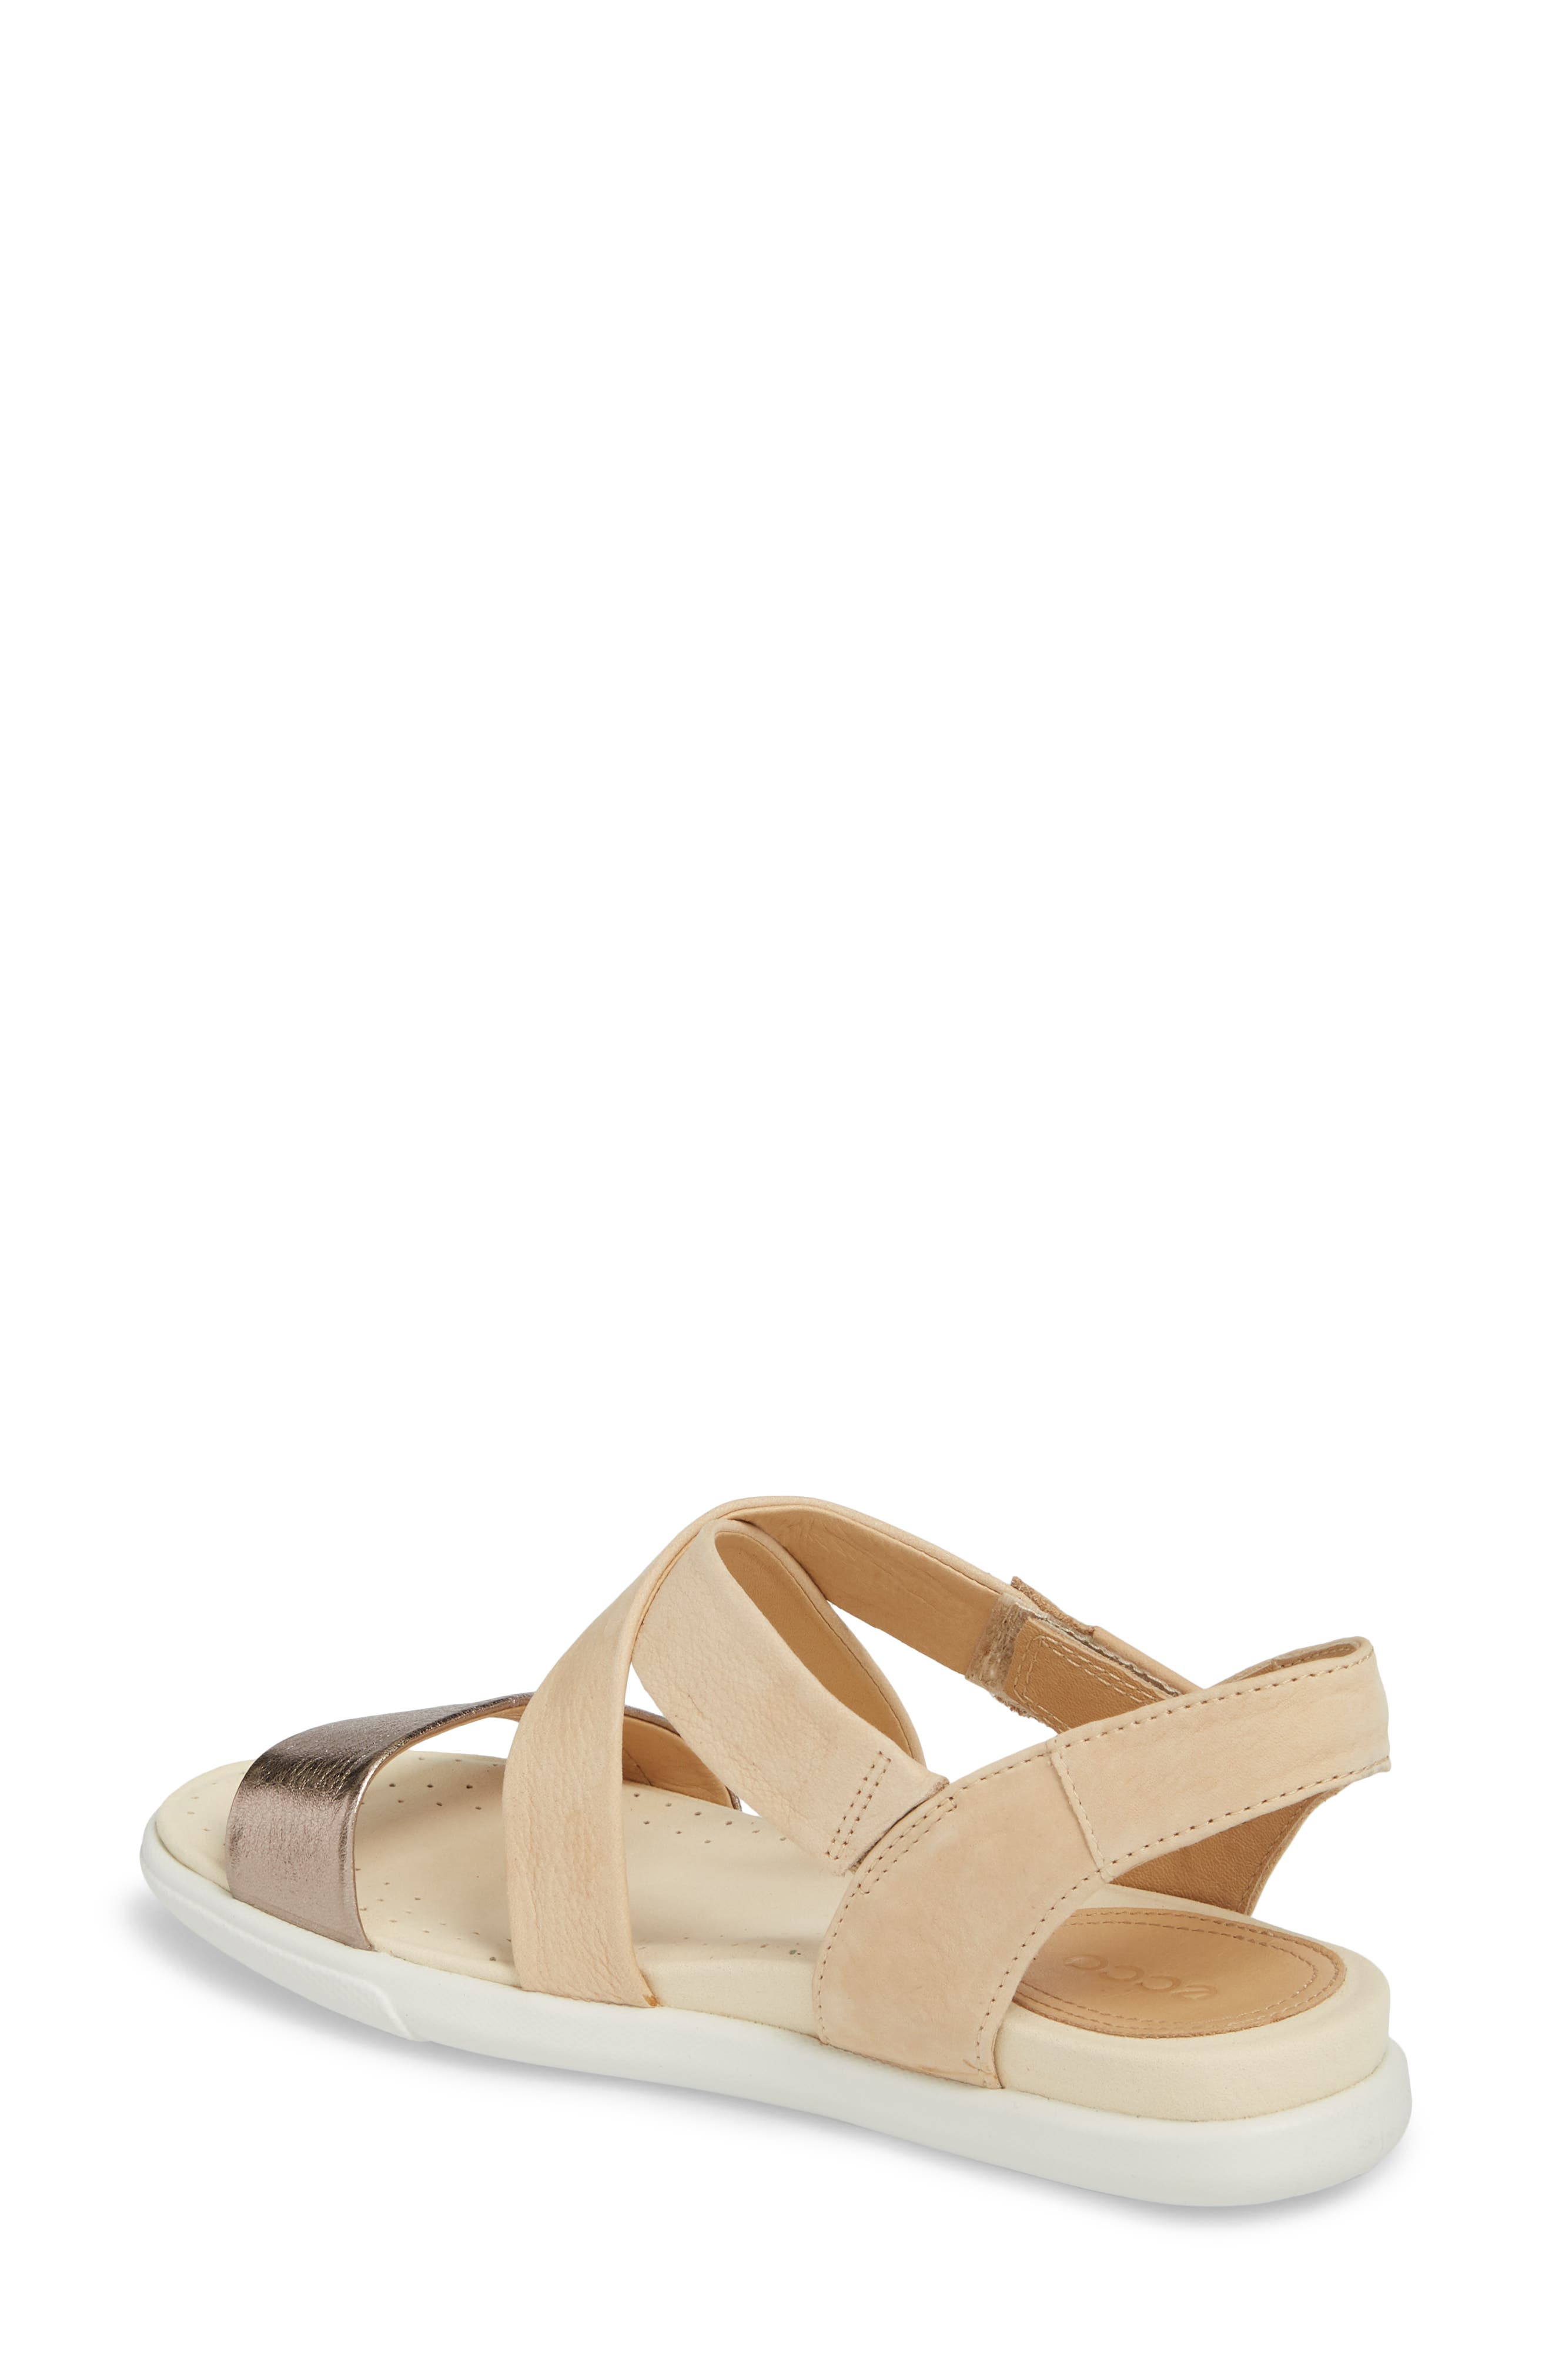 Damara Cross-Strap Sandal,                             Alternate thumbnail 10, color,